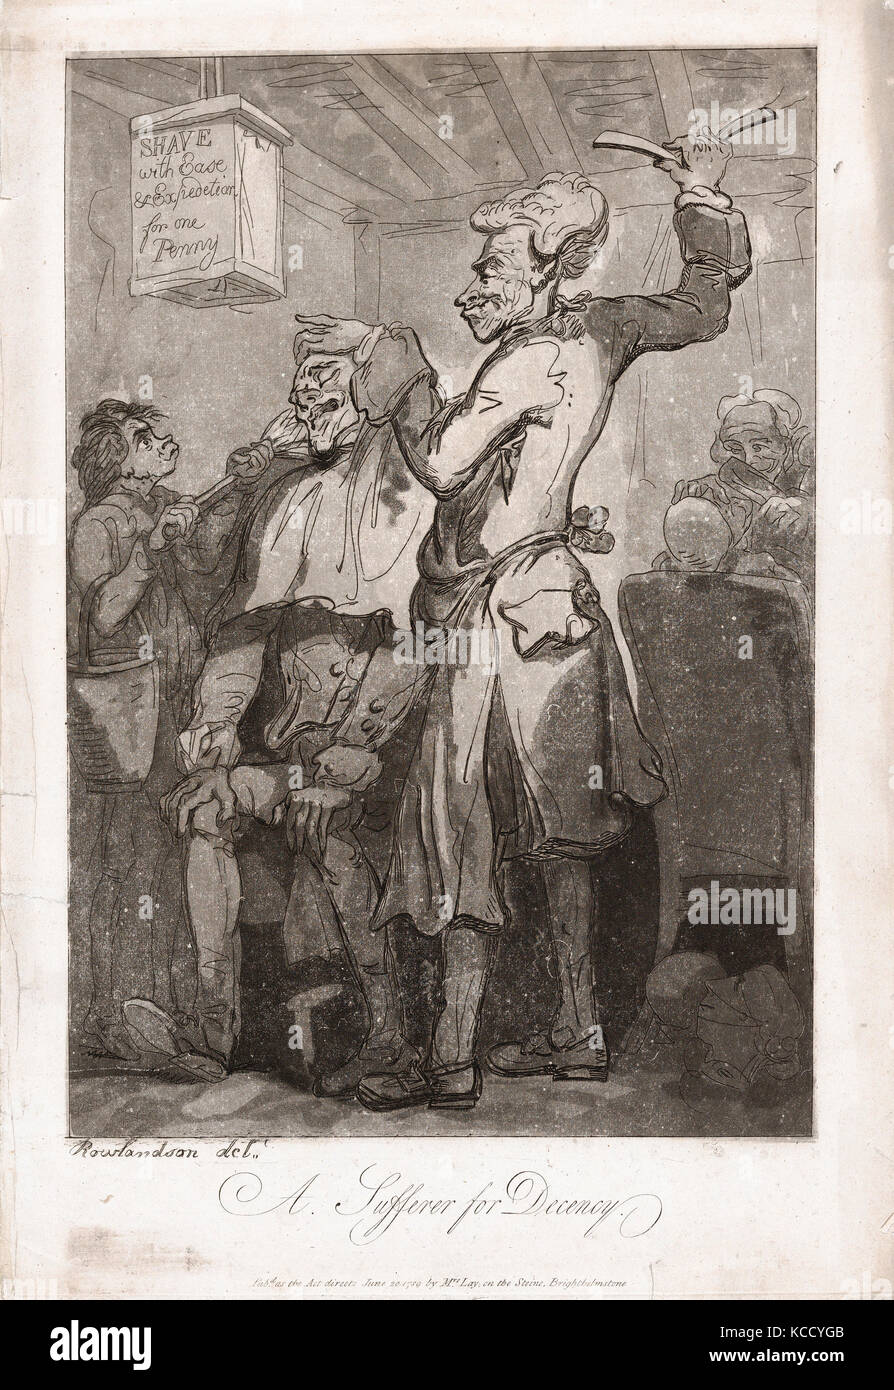 Drawings and Prints, Print, A Sufferer for Decency, Artist, Publisher, Thomas Rowlandson, Mrs. Lay, British, London - Stock Image